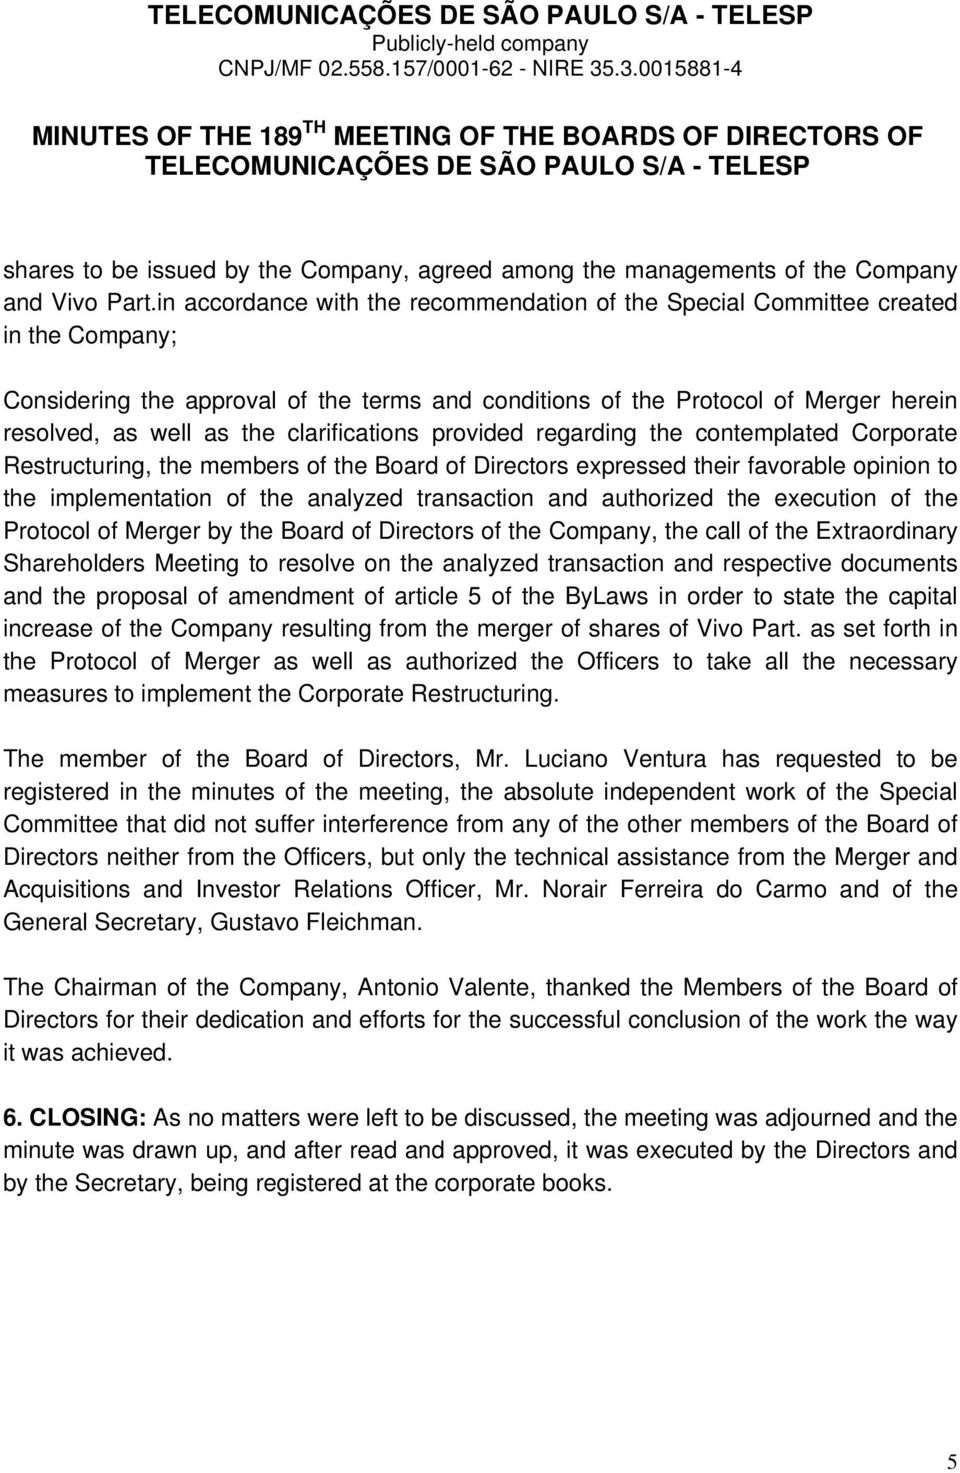 clarifications provided regarding the contemplated Corporate Restructuring, the members of the Board of Directors expressed their favorable opinion to the implementation of the analyzed transaction